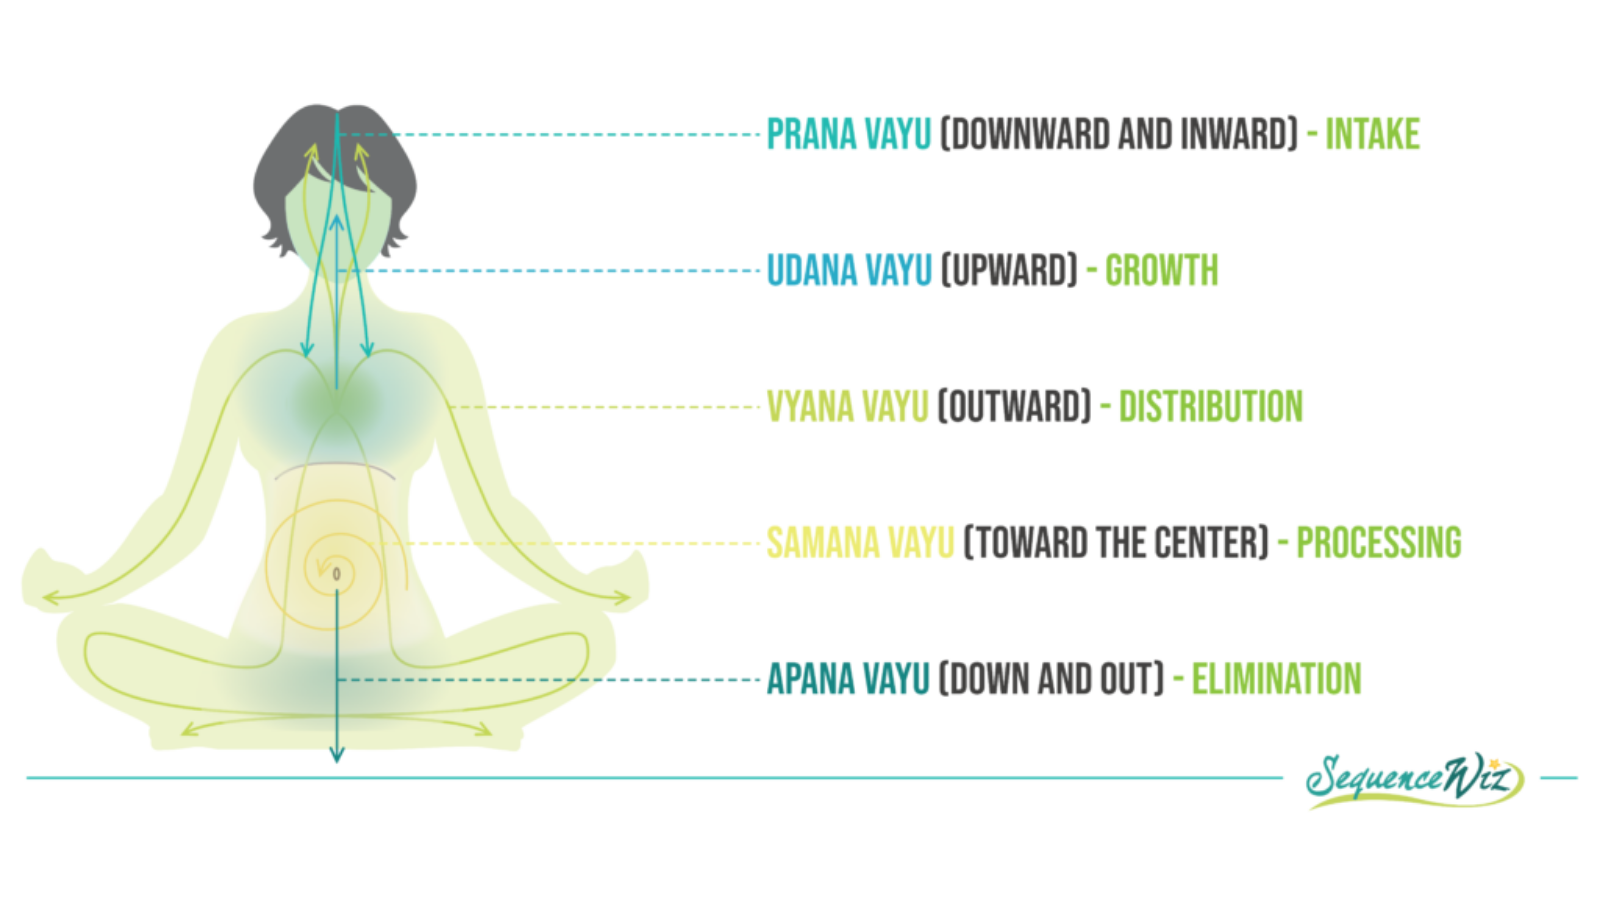 raphic depicting the 5 Pancha Vayas or systems of nourishment in the body